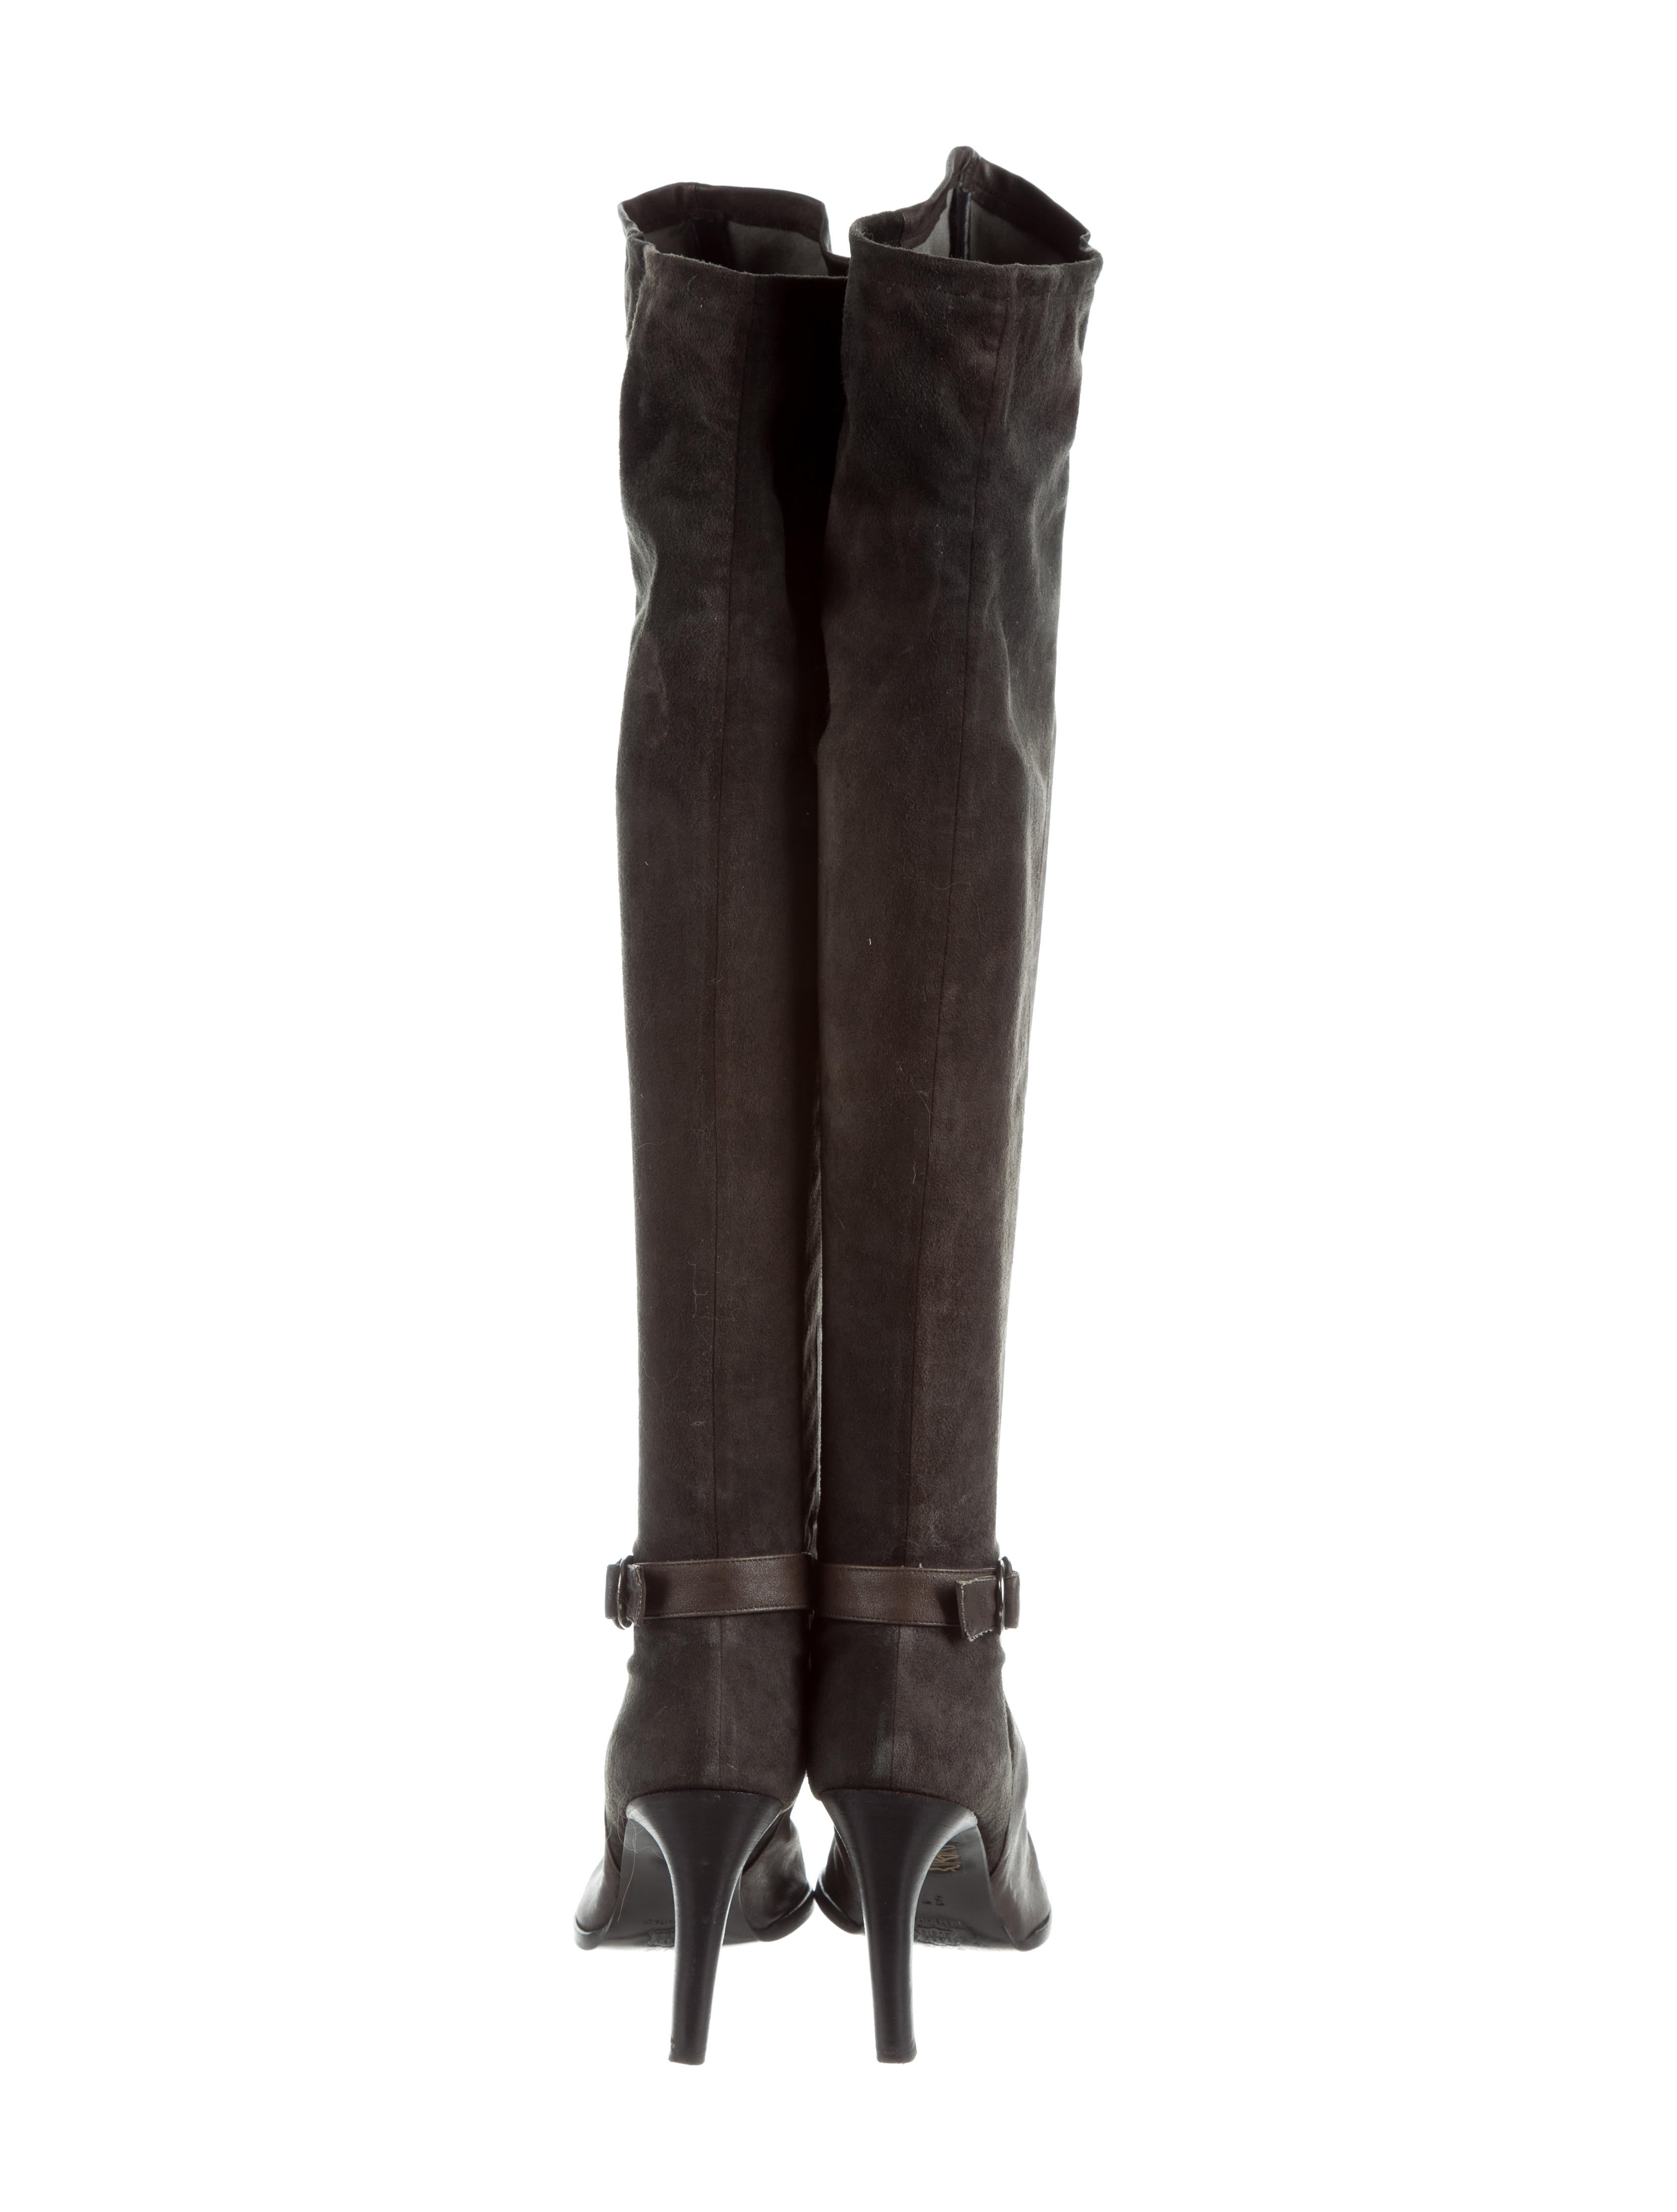 cheap discount fashionable online Plein Sud Paneled Over-The-Knee Boots cheap sale online 0r9RbEtMo